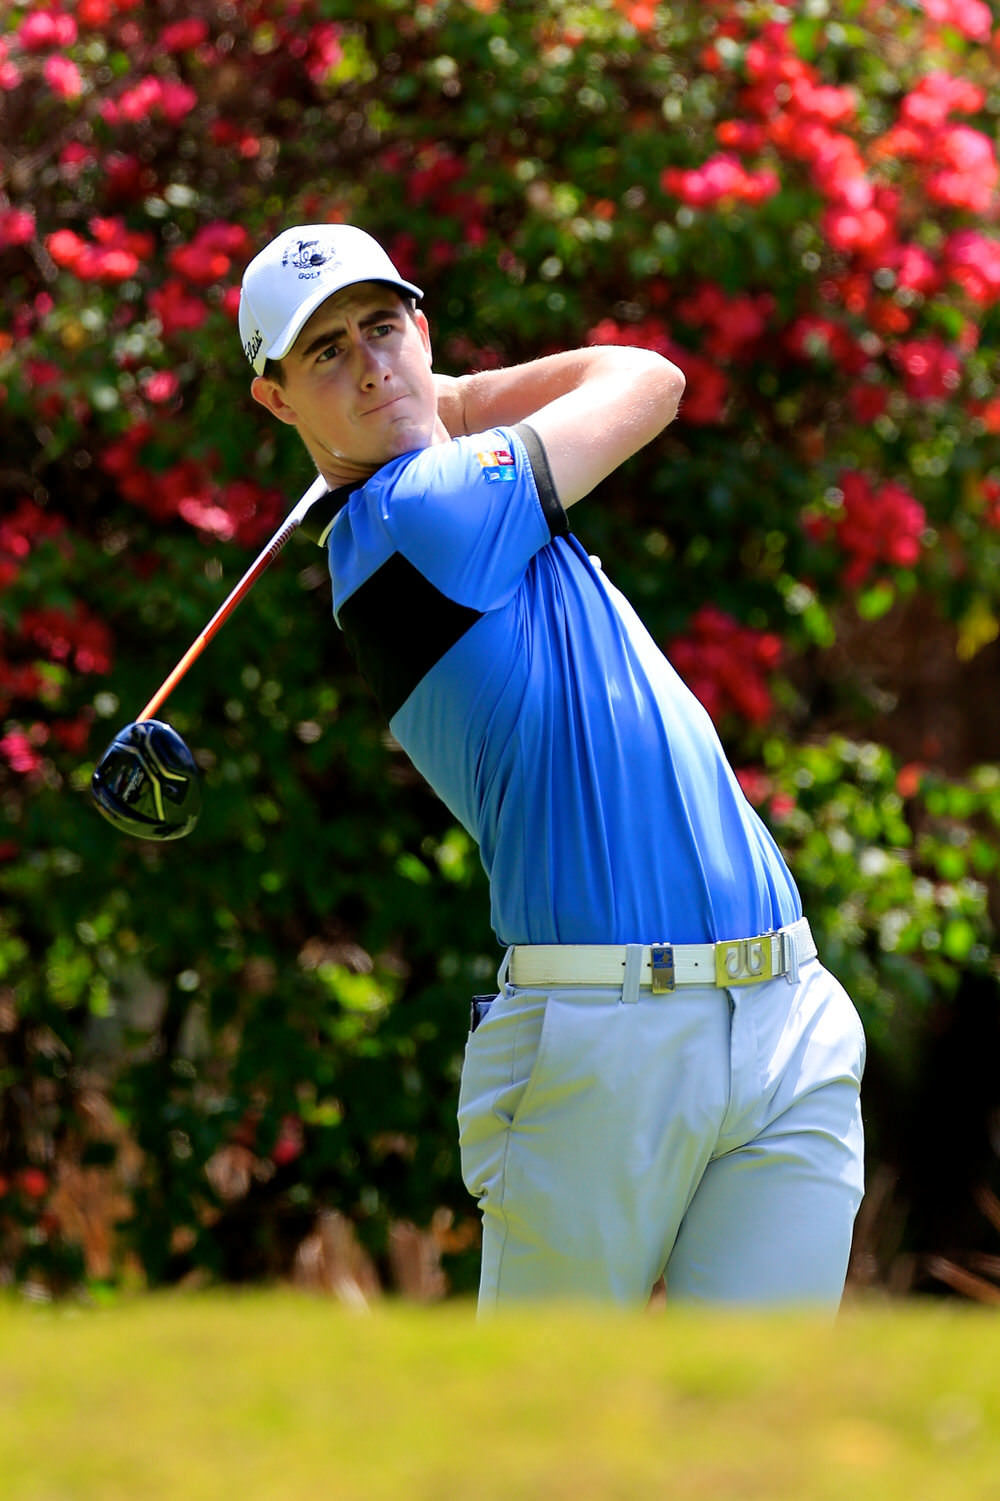 Gary Hurley (IRE) during the third round of the of the Barclays Kenya Open. 25/03/2017 Picture: Golffile | Phil Inglis